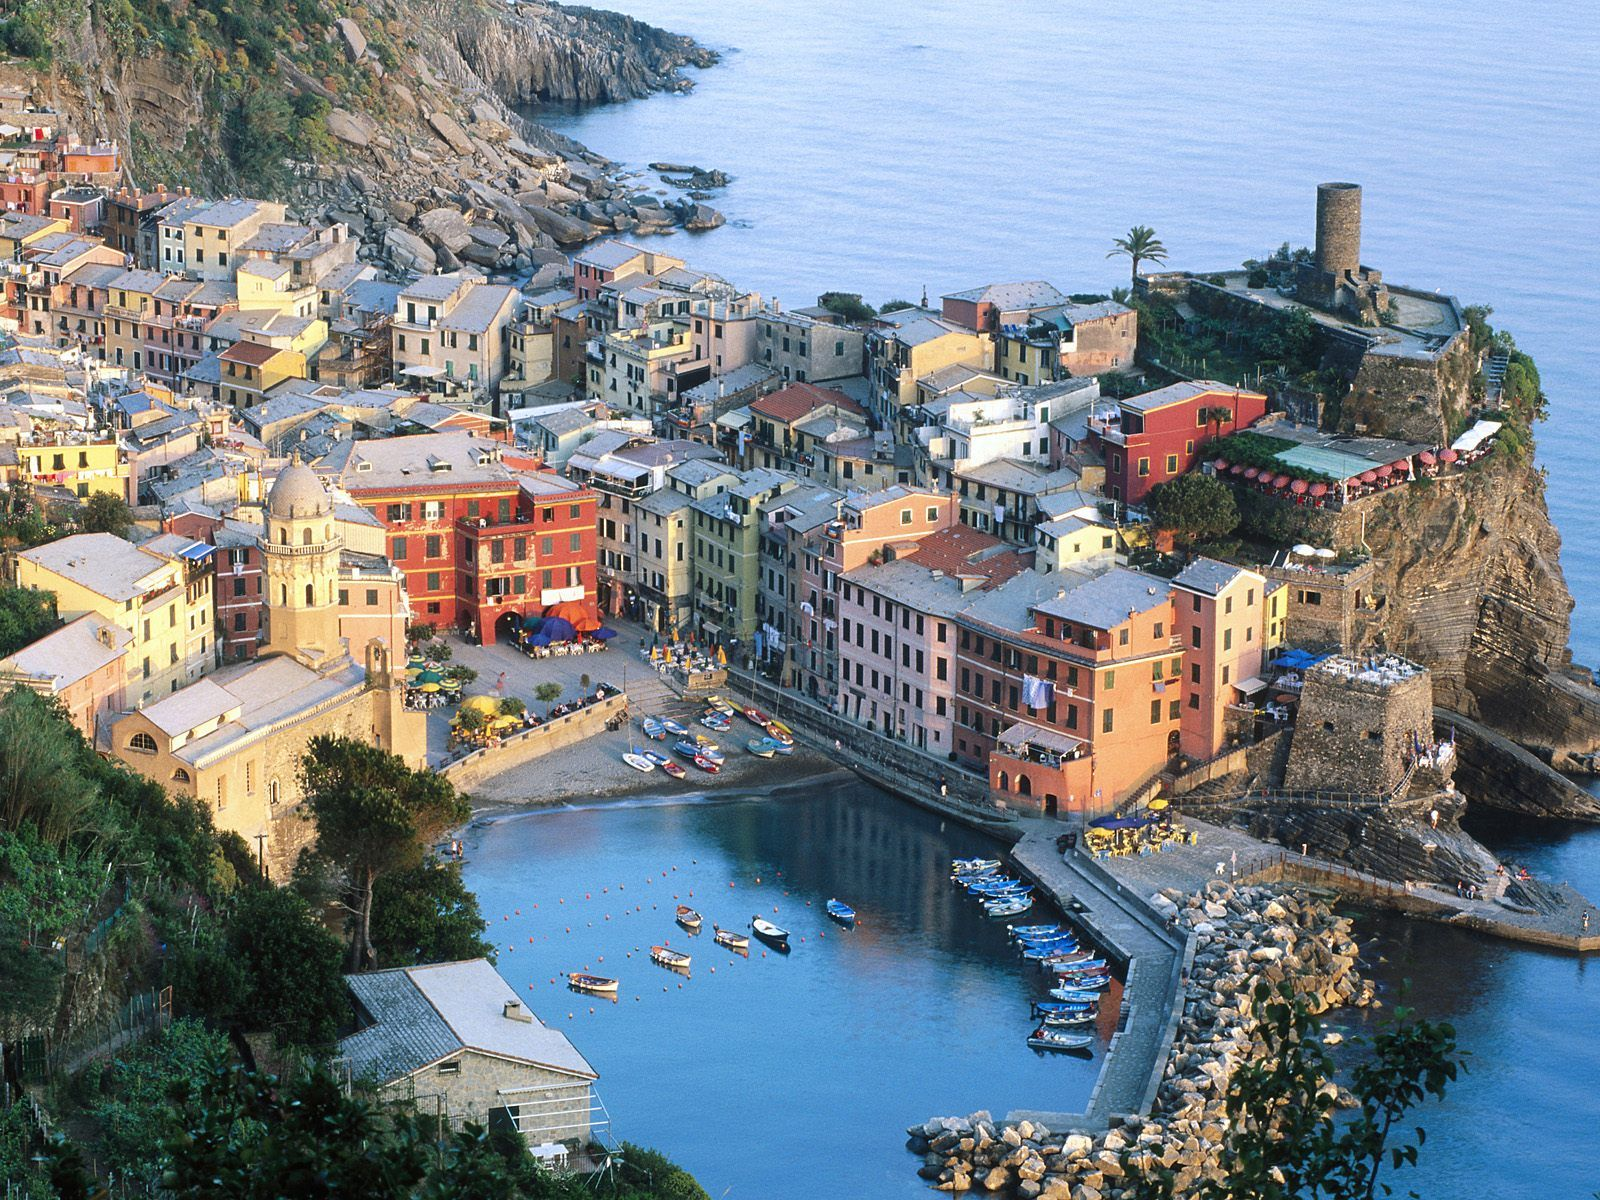 Cinque Terre- Italy's version of the French Riviera